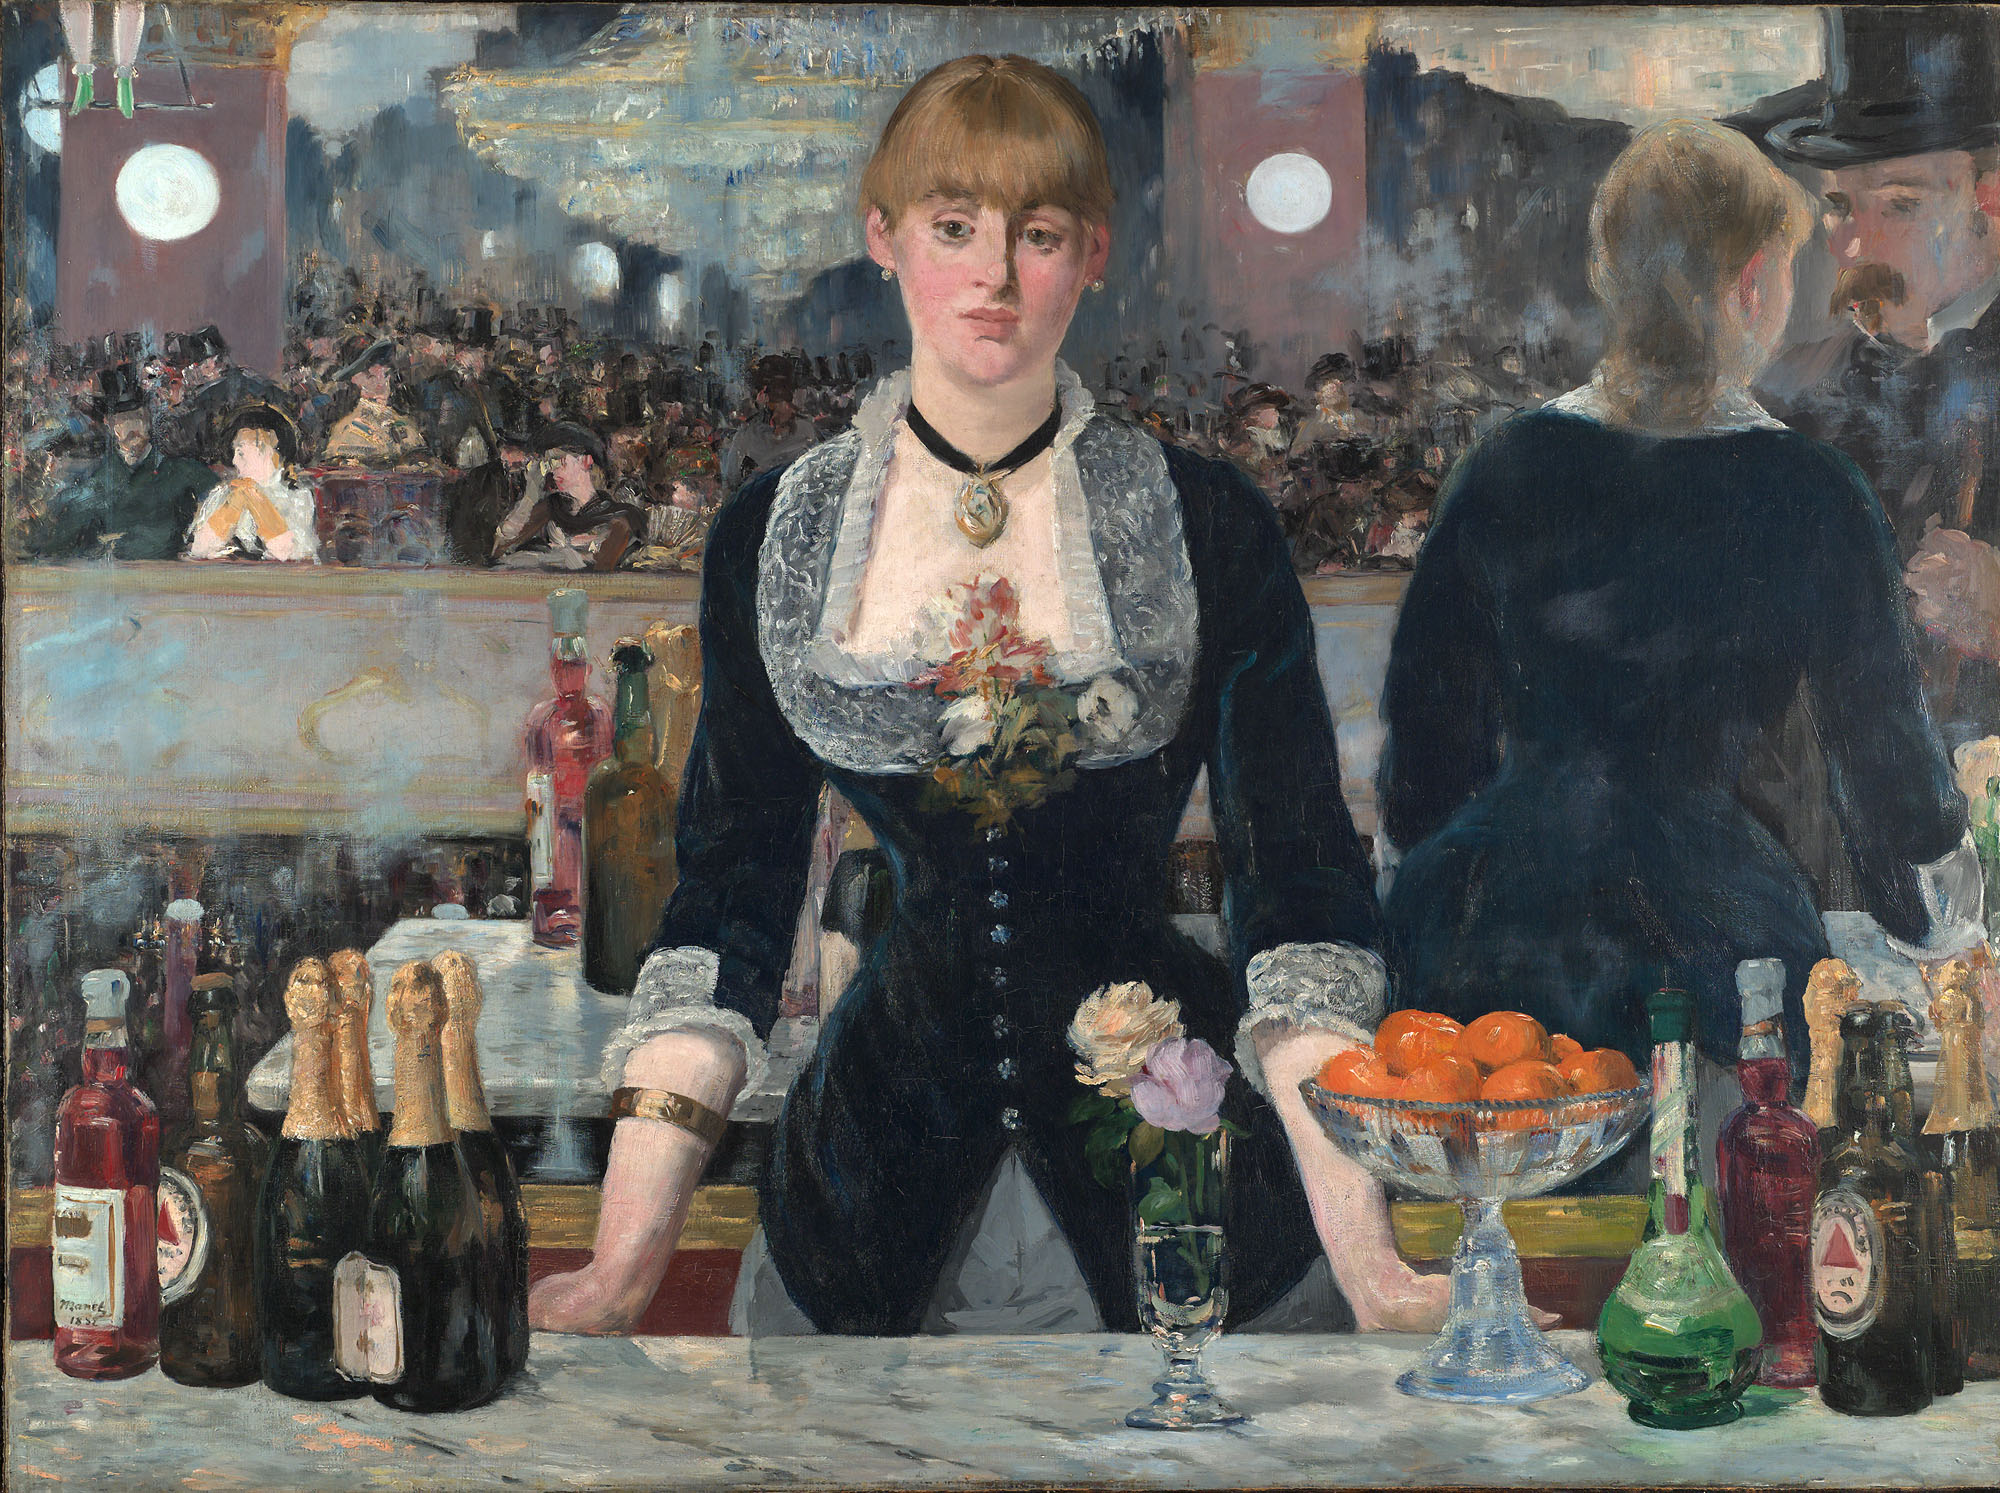 edouard_manet_a_bar_at_the_folies-bergere